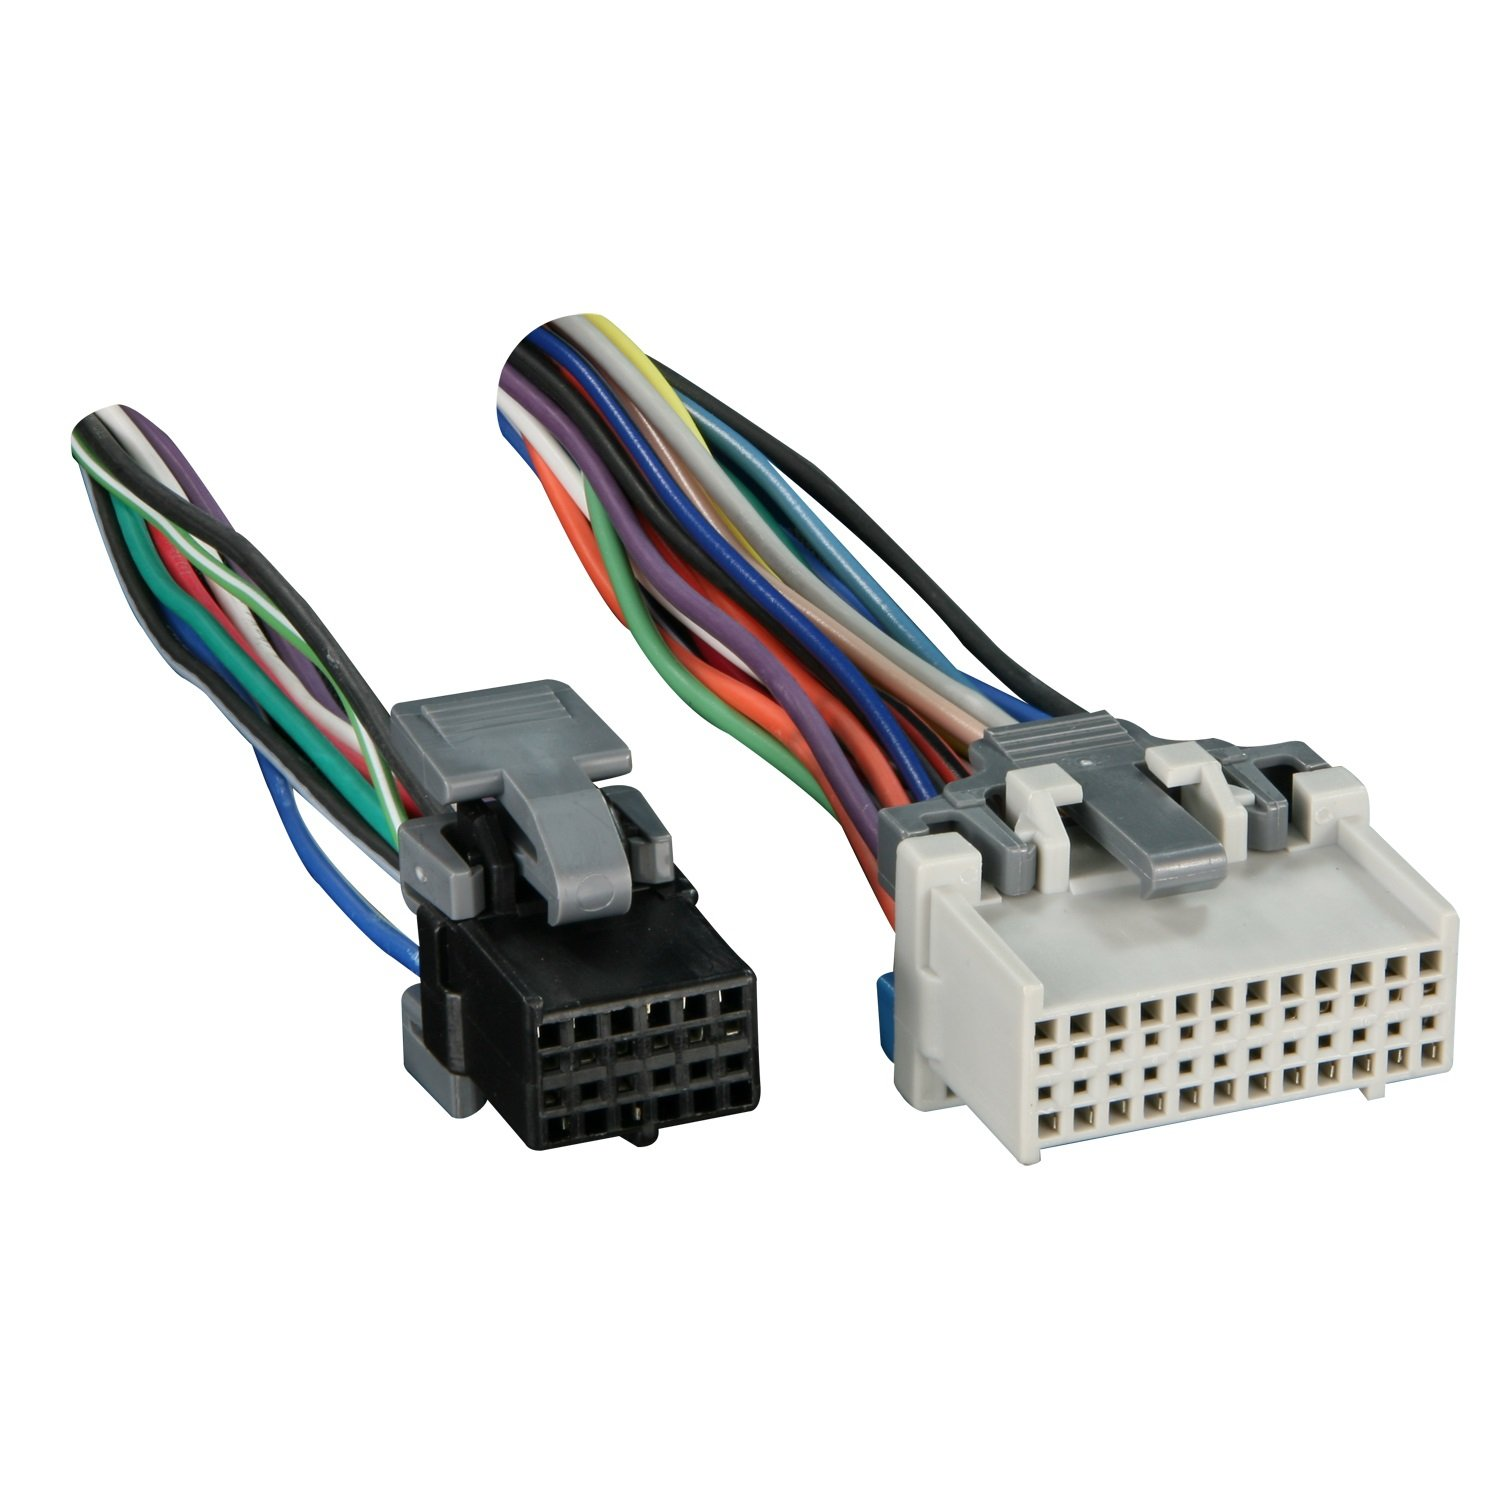 711log4bdML._SL1500_ amazon com metra turbowires 71 2003 1 wiring harness car electronics 05 colorado radio wiring harness at mifinder.co